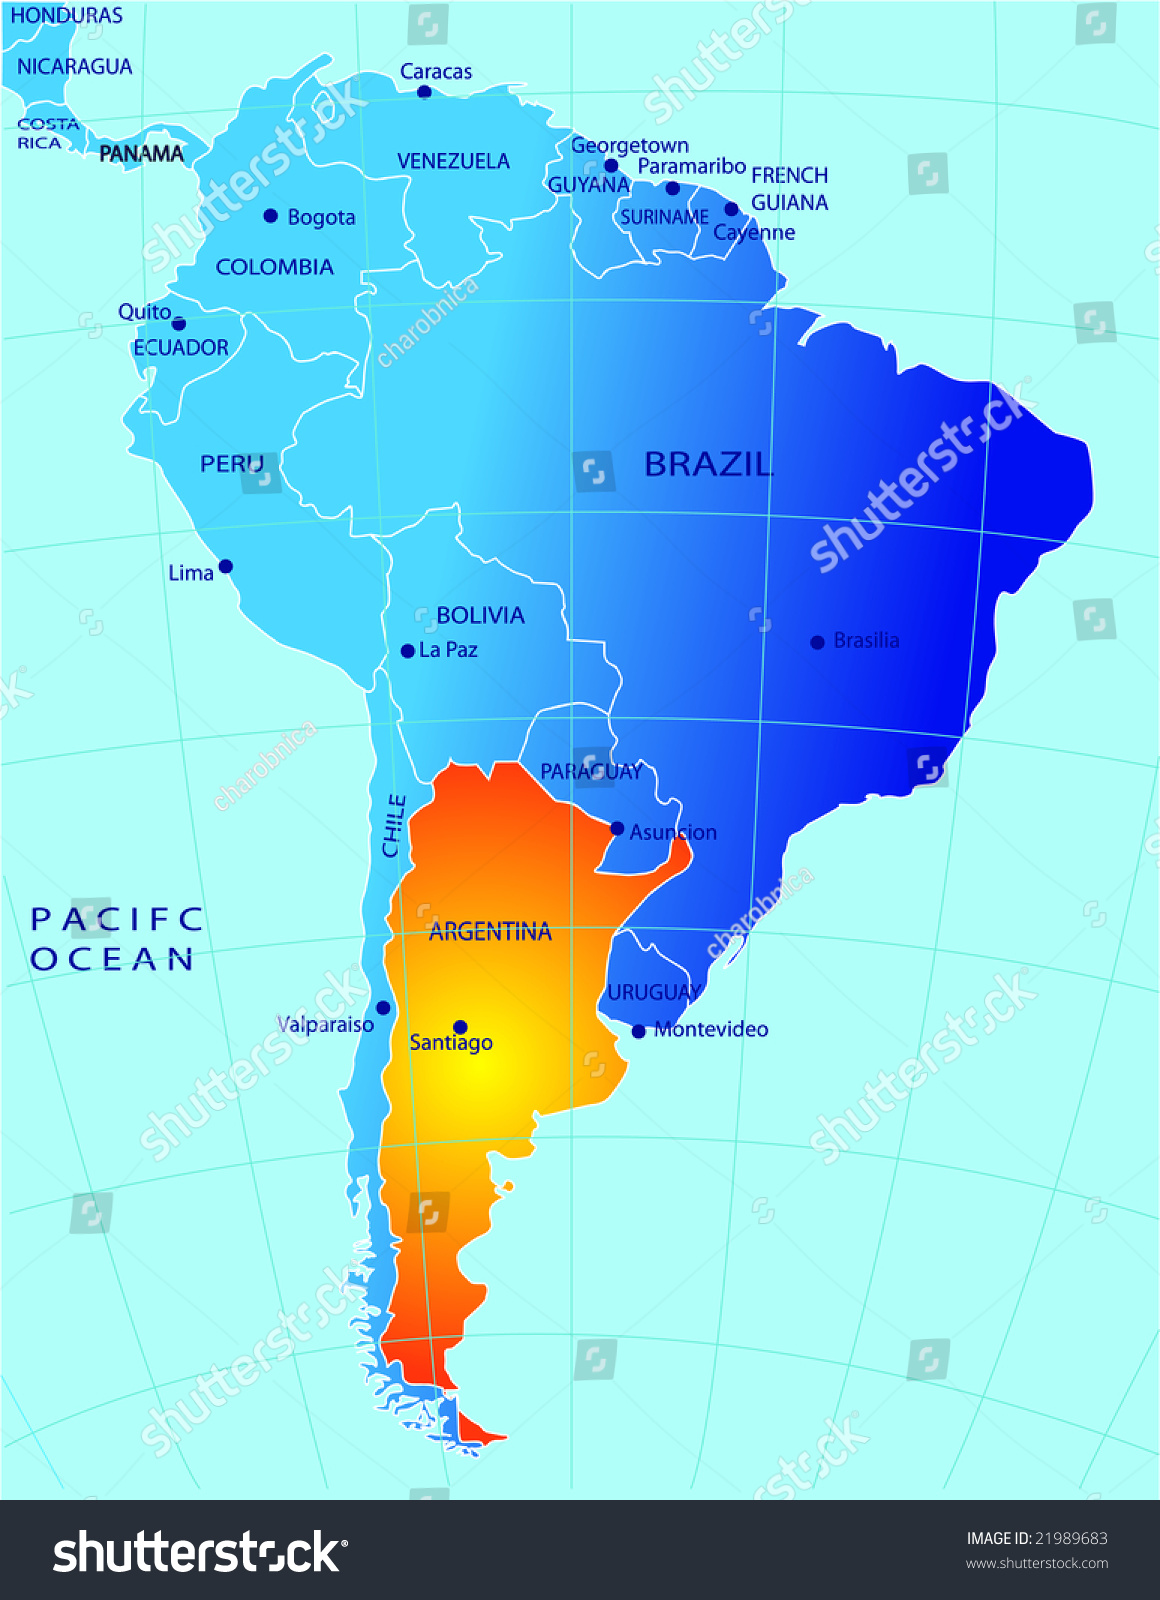 Political Map Argentina Stock Vector Shutterstock - Argentina map of